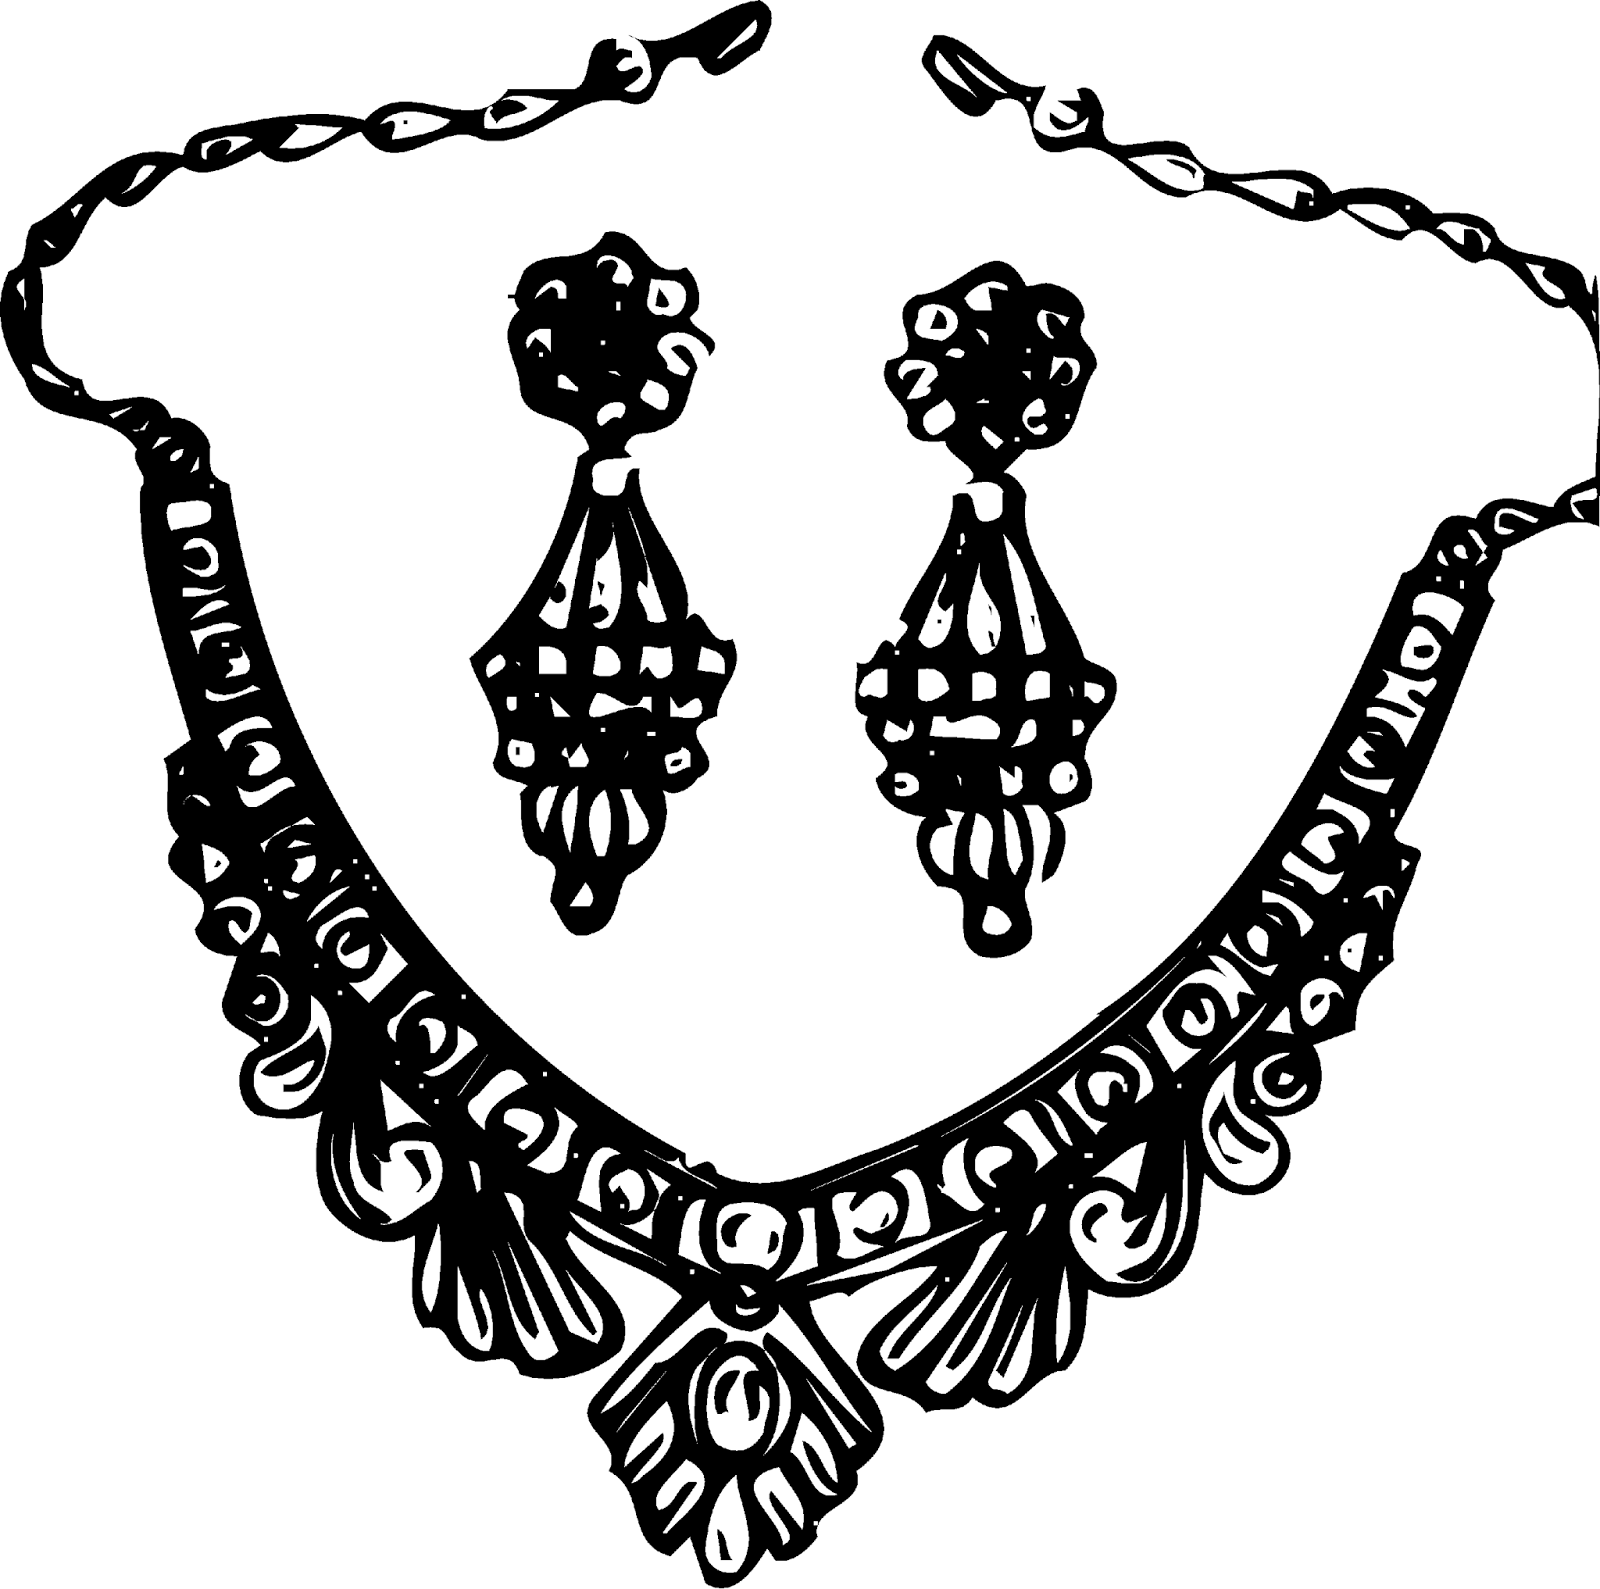 Jewelry clipart black and white - ClipartFest